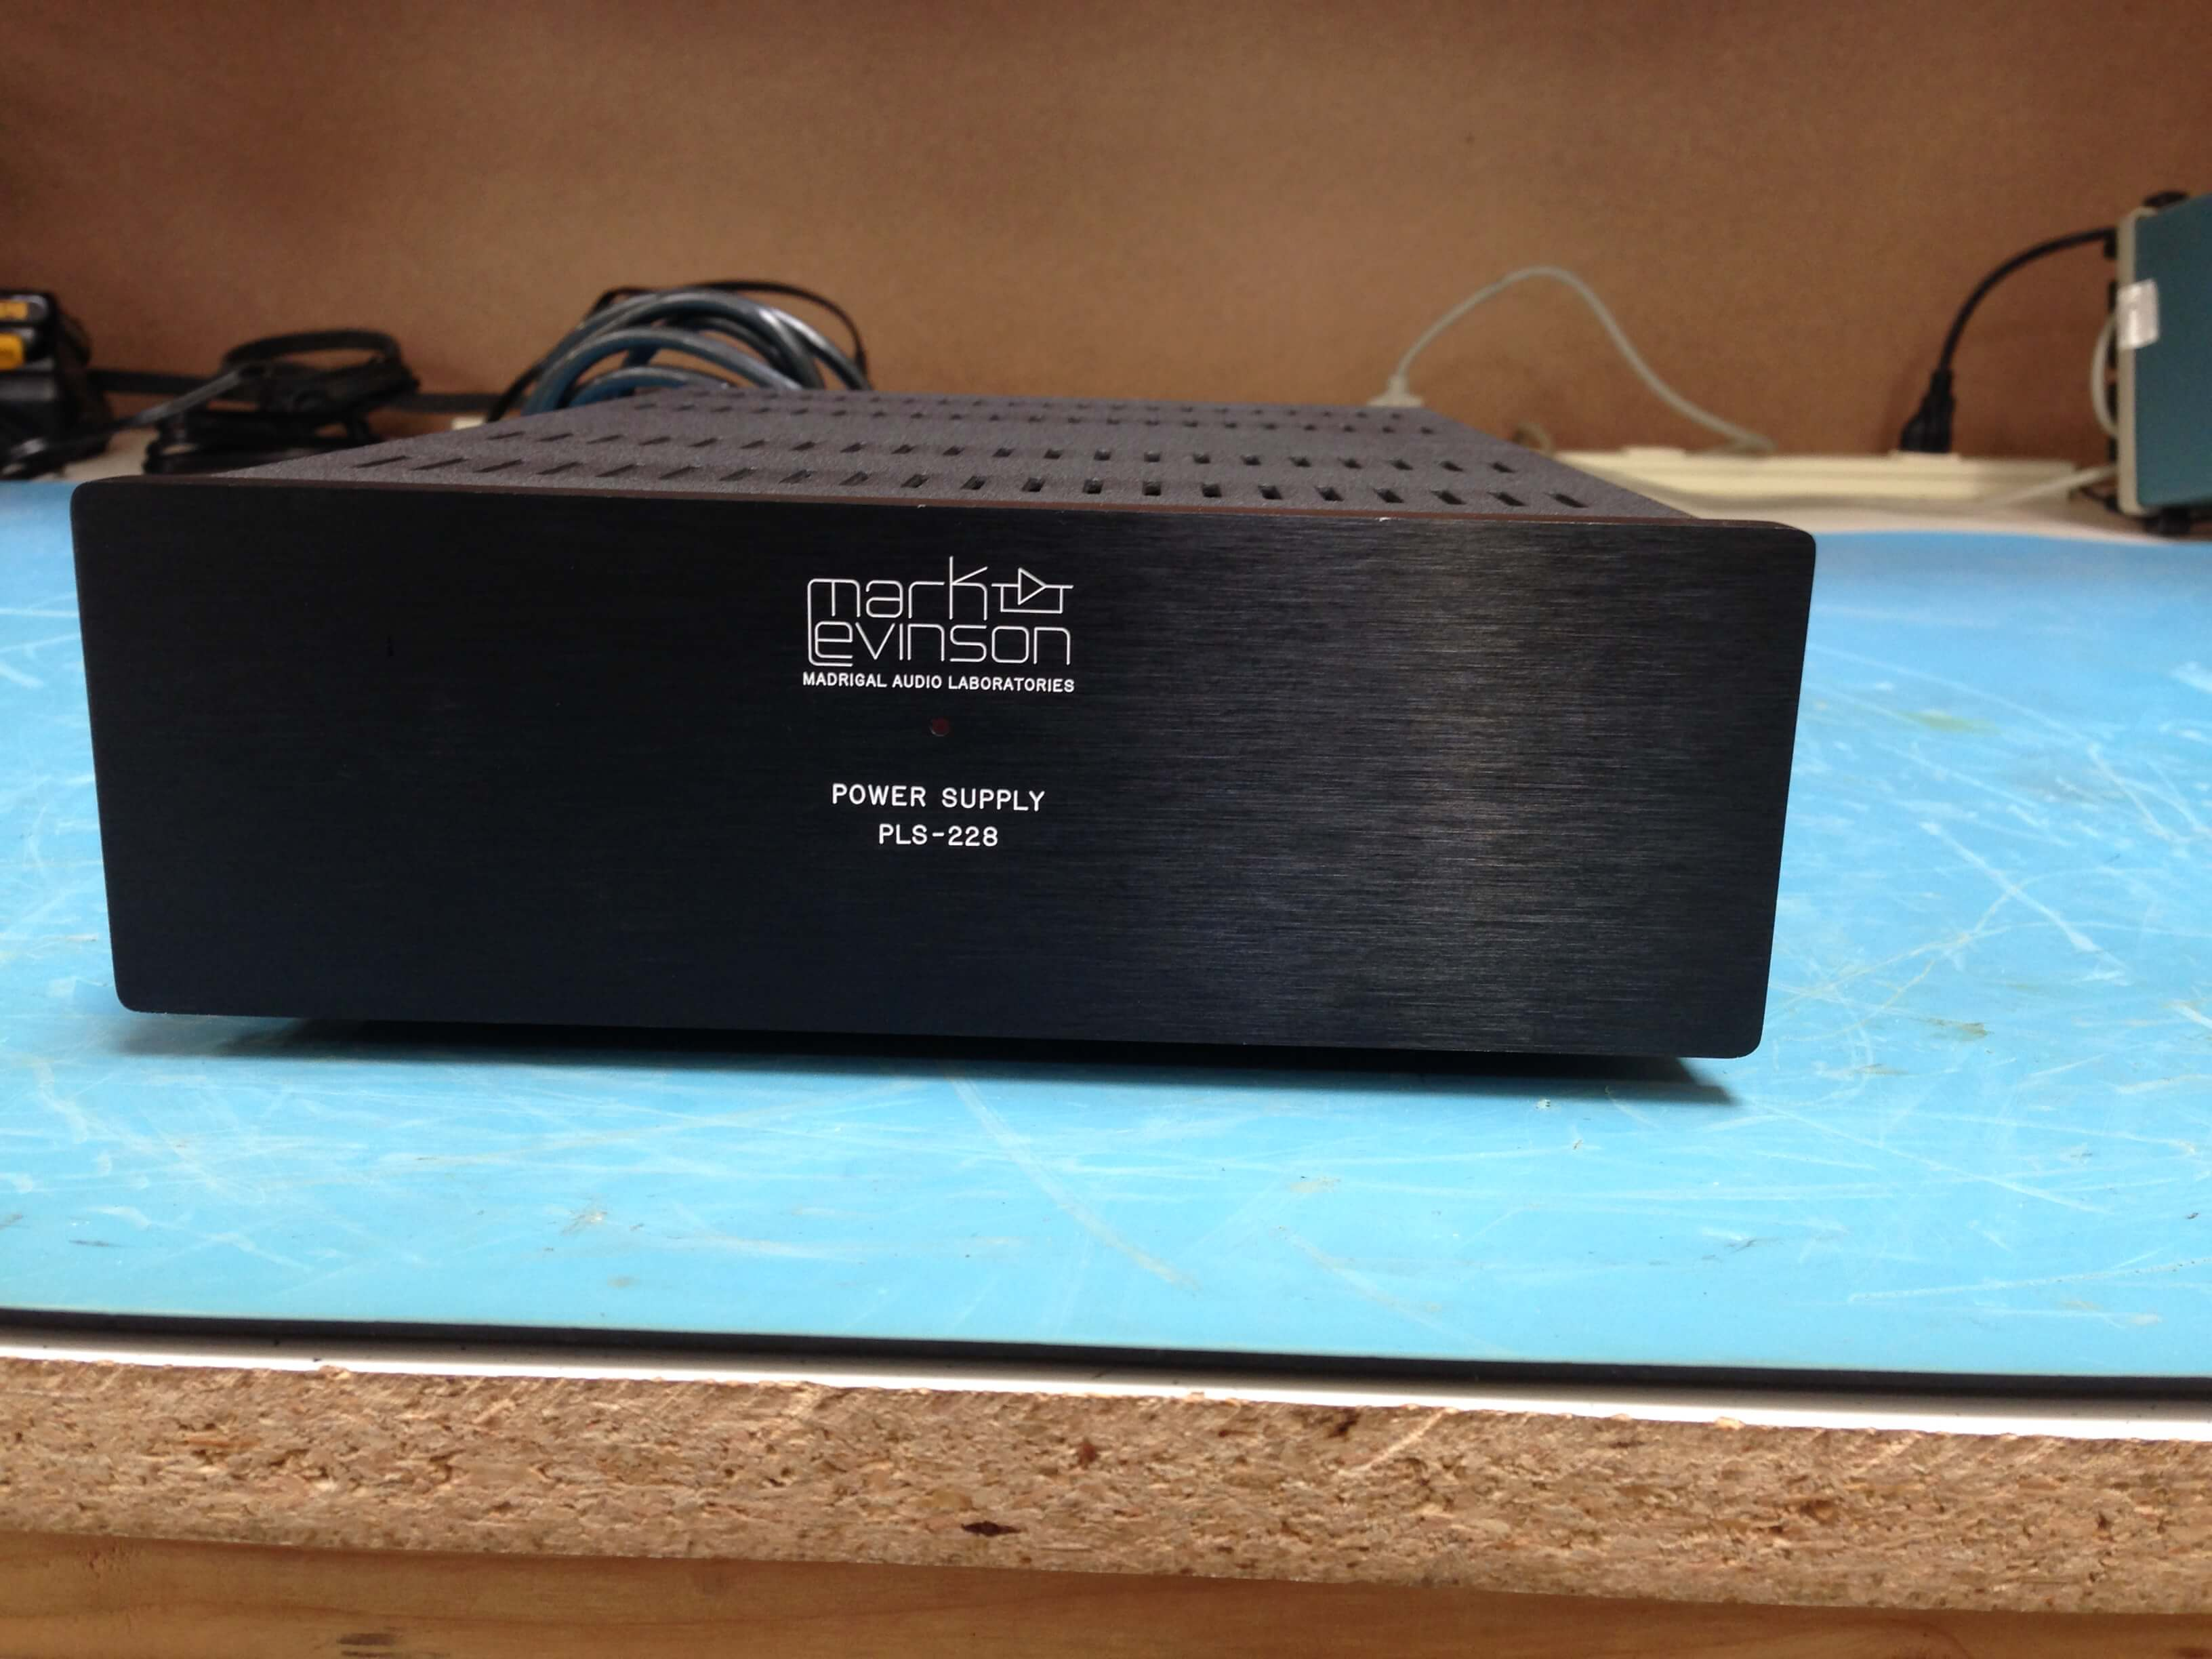 Mark Levinson 28 preamplifier with PLS-228 power supply